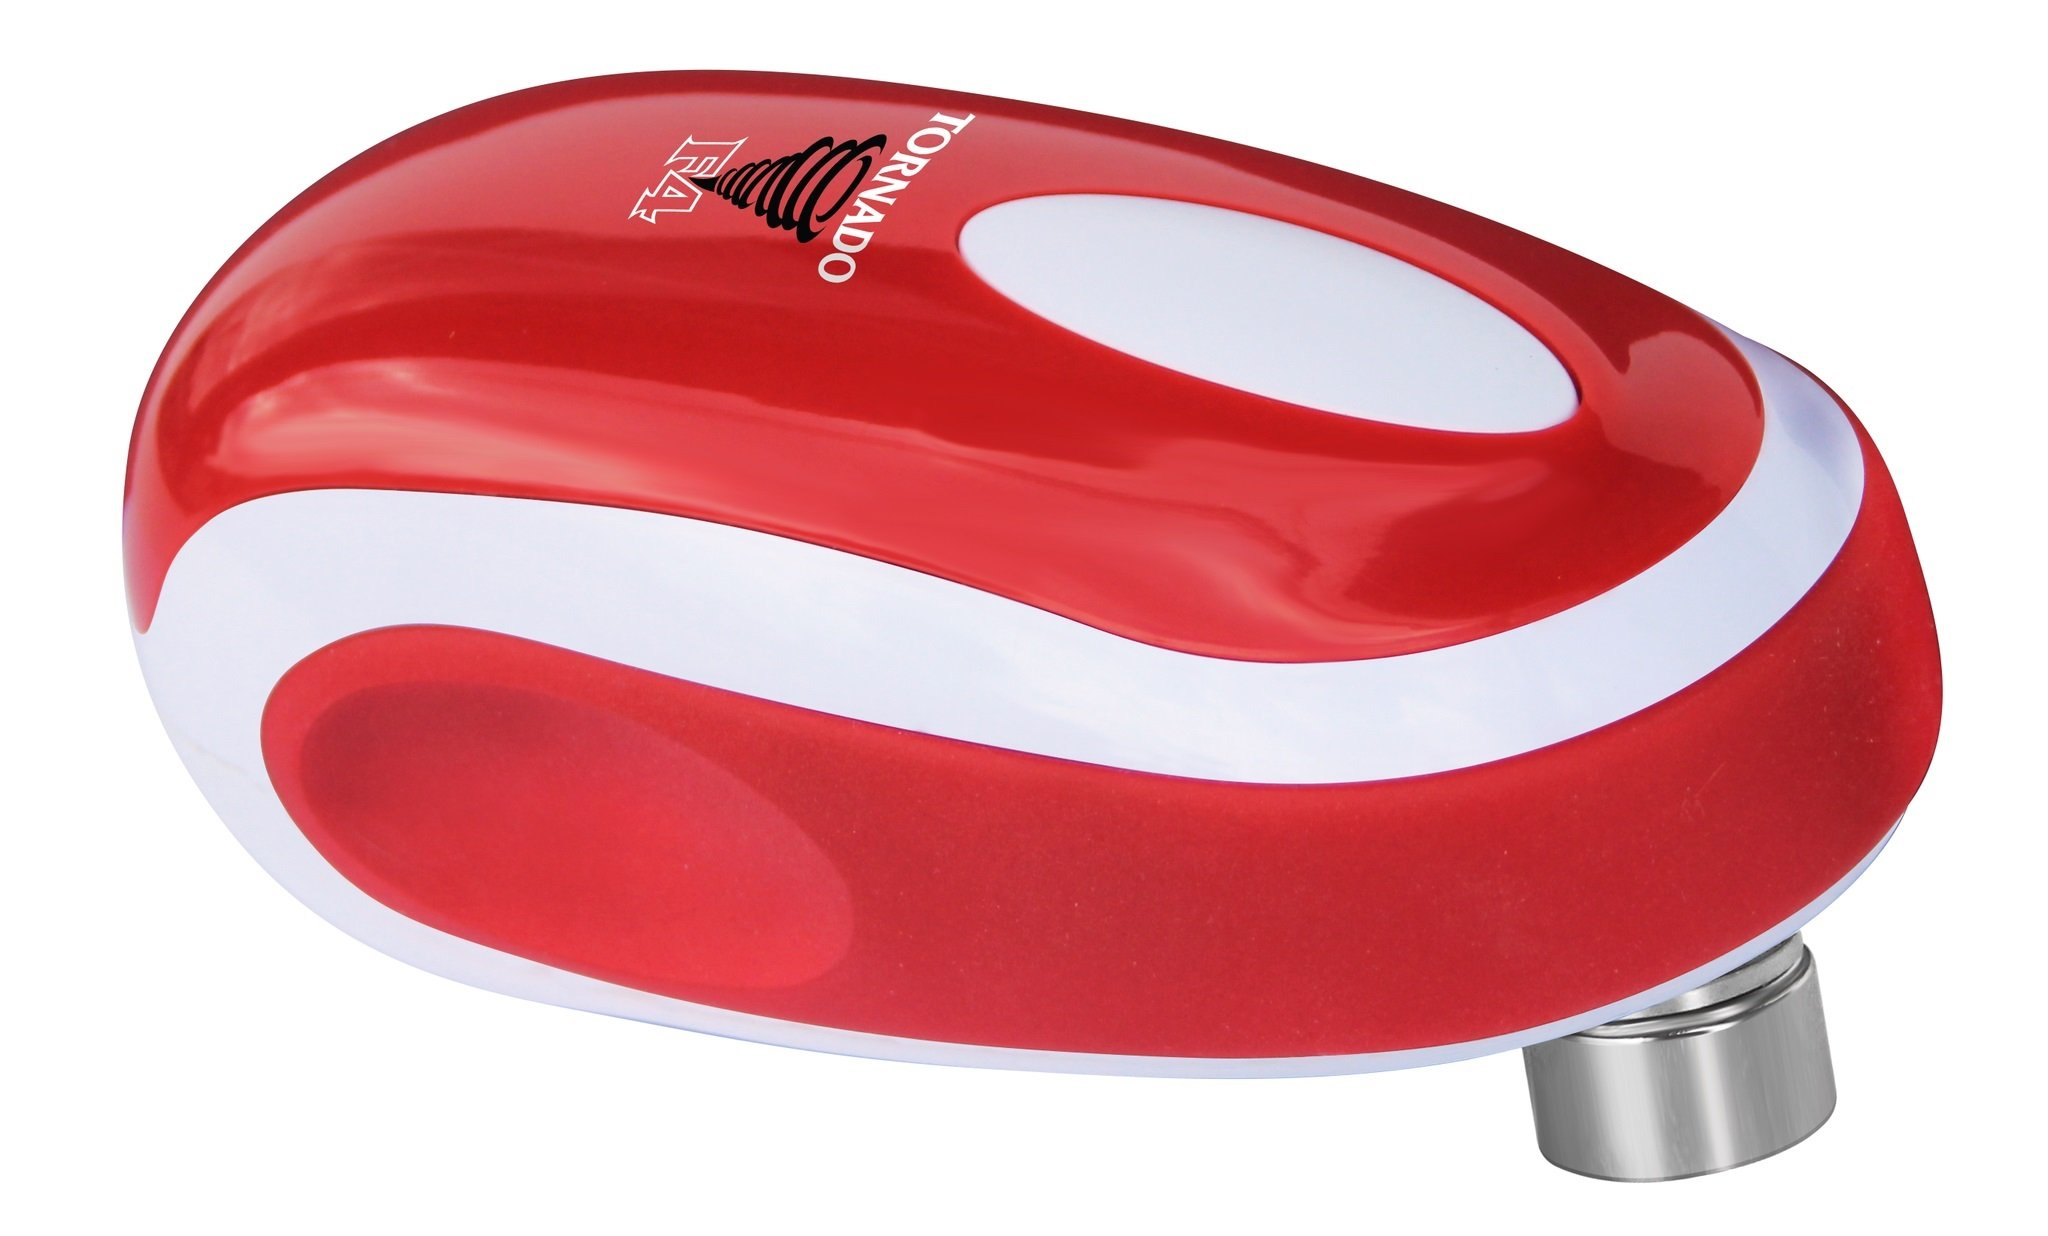 Tornado F4 Can Opener - New and Improved - Safest, fastest, Easiest Hands-Free Can Opener (Red) by Tornado Can Opener